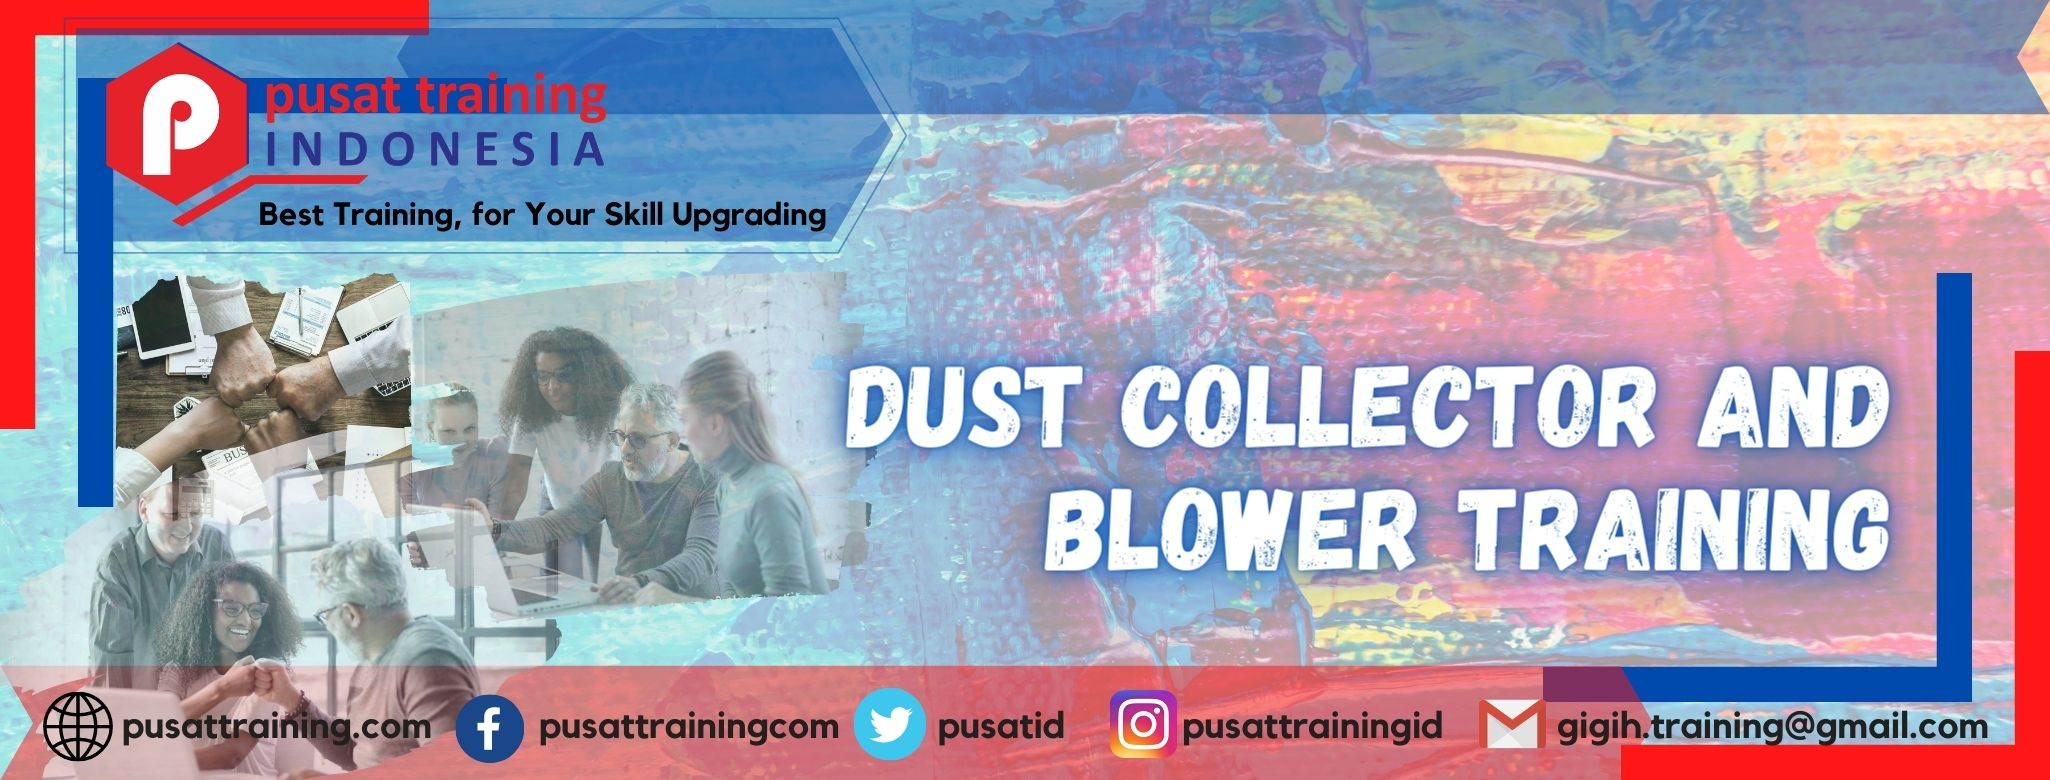 dust-collector-and-blower-training